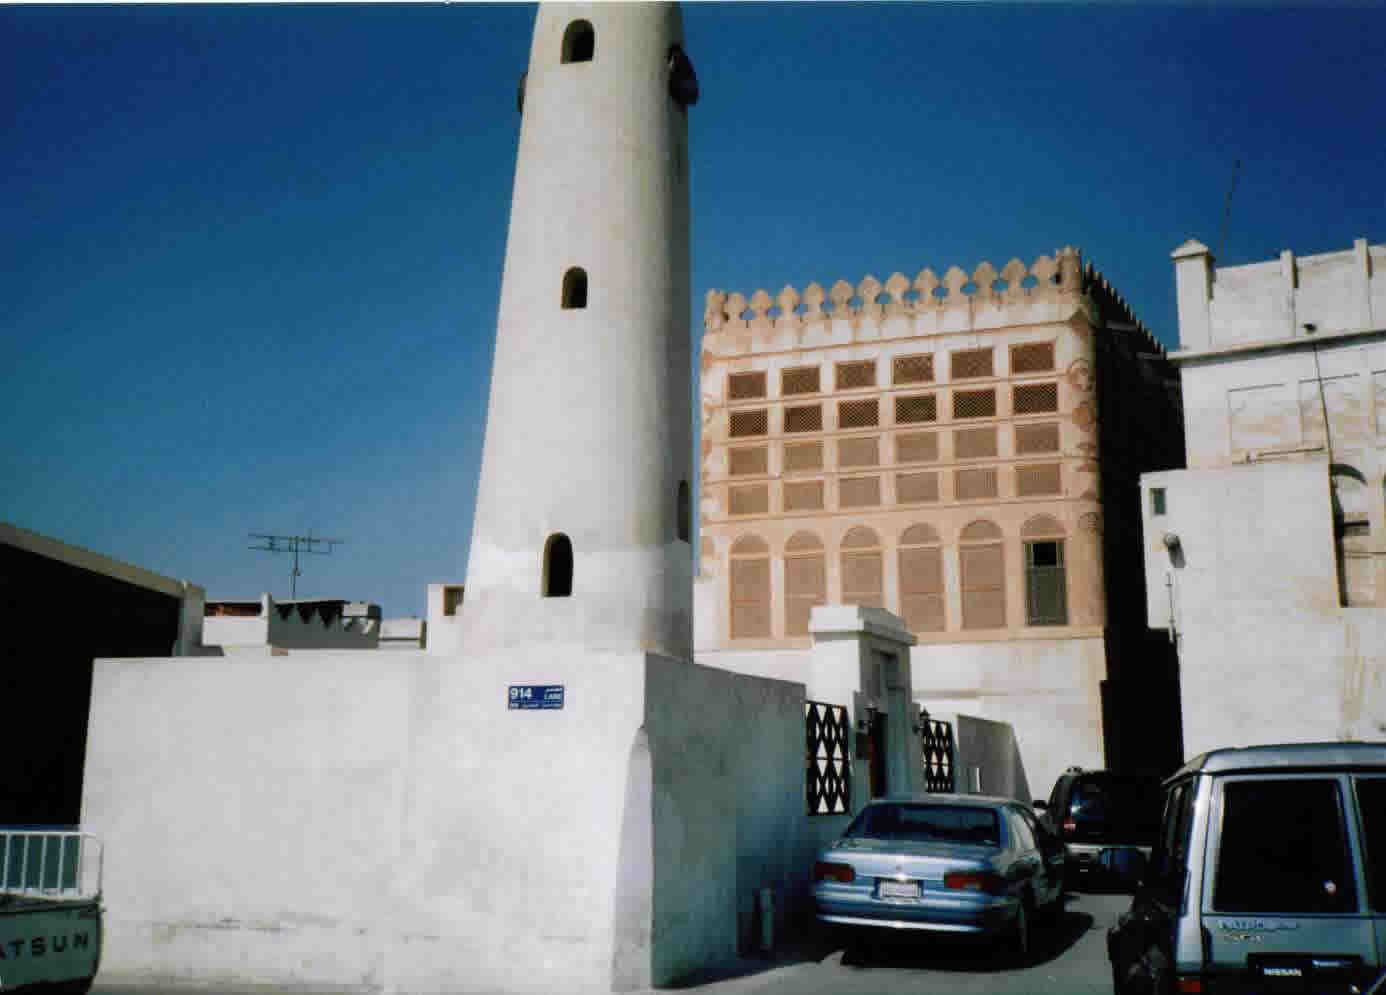 Muharraq Dhow Building Yard Muharraq Island, Bahrain this-other-world